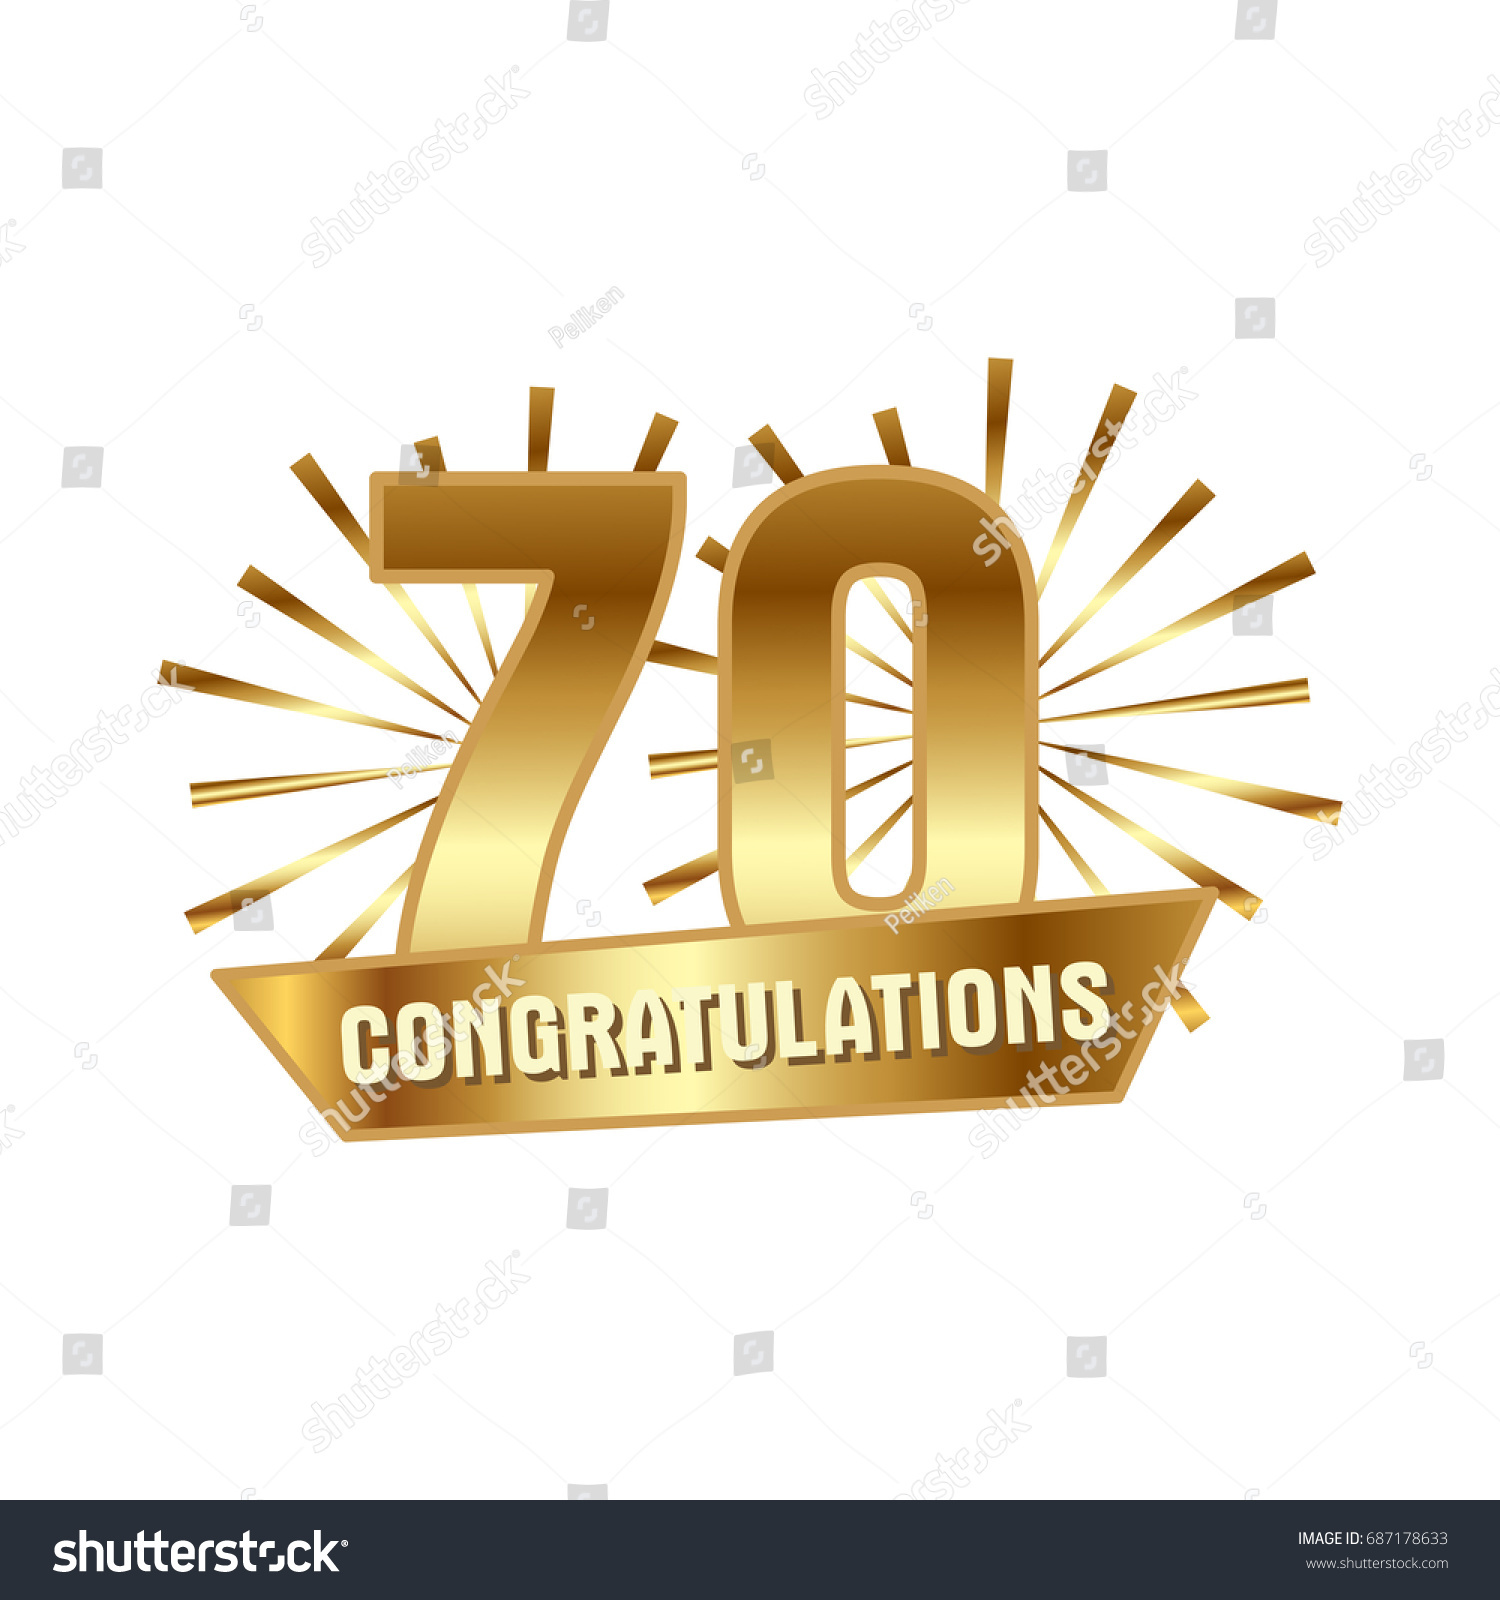 Anniversary golden seventy years number 70th stock vector 687178633 anniversary golden seventy years number 70th years festive logo and greeting with sunburst for invitation kristyandbryce Choice Image